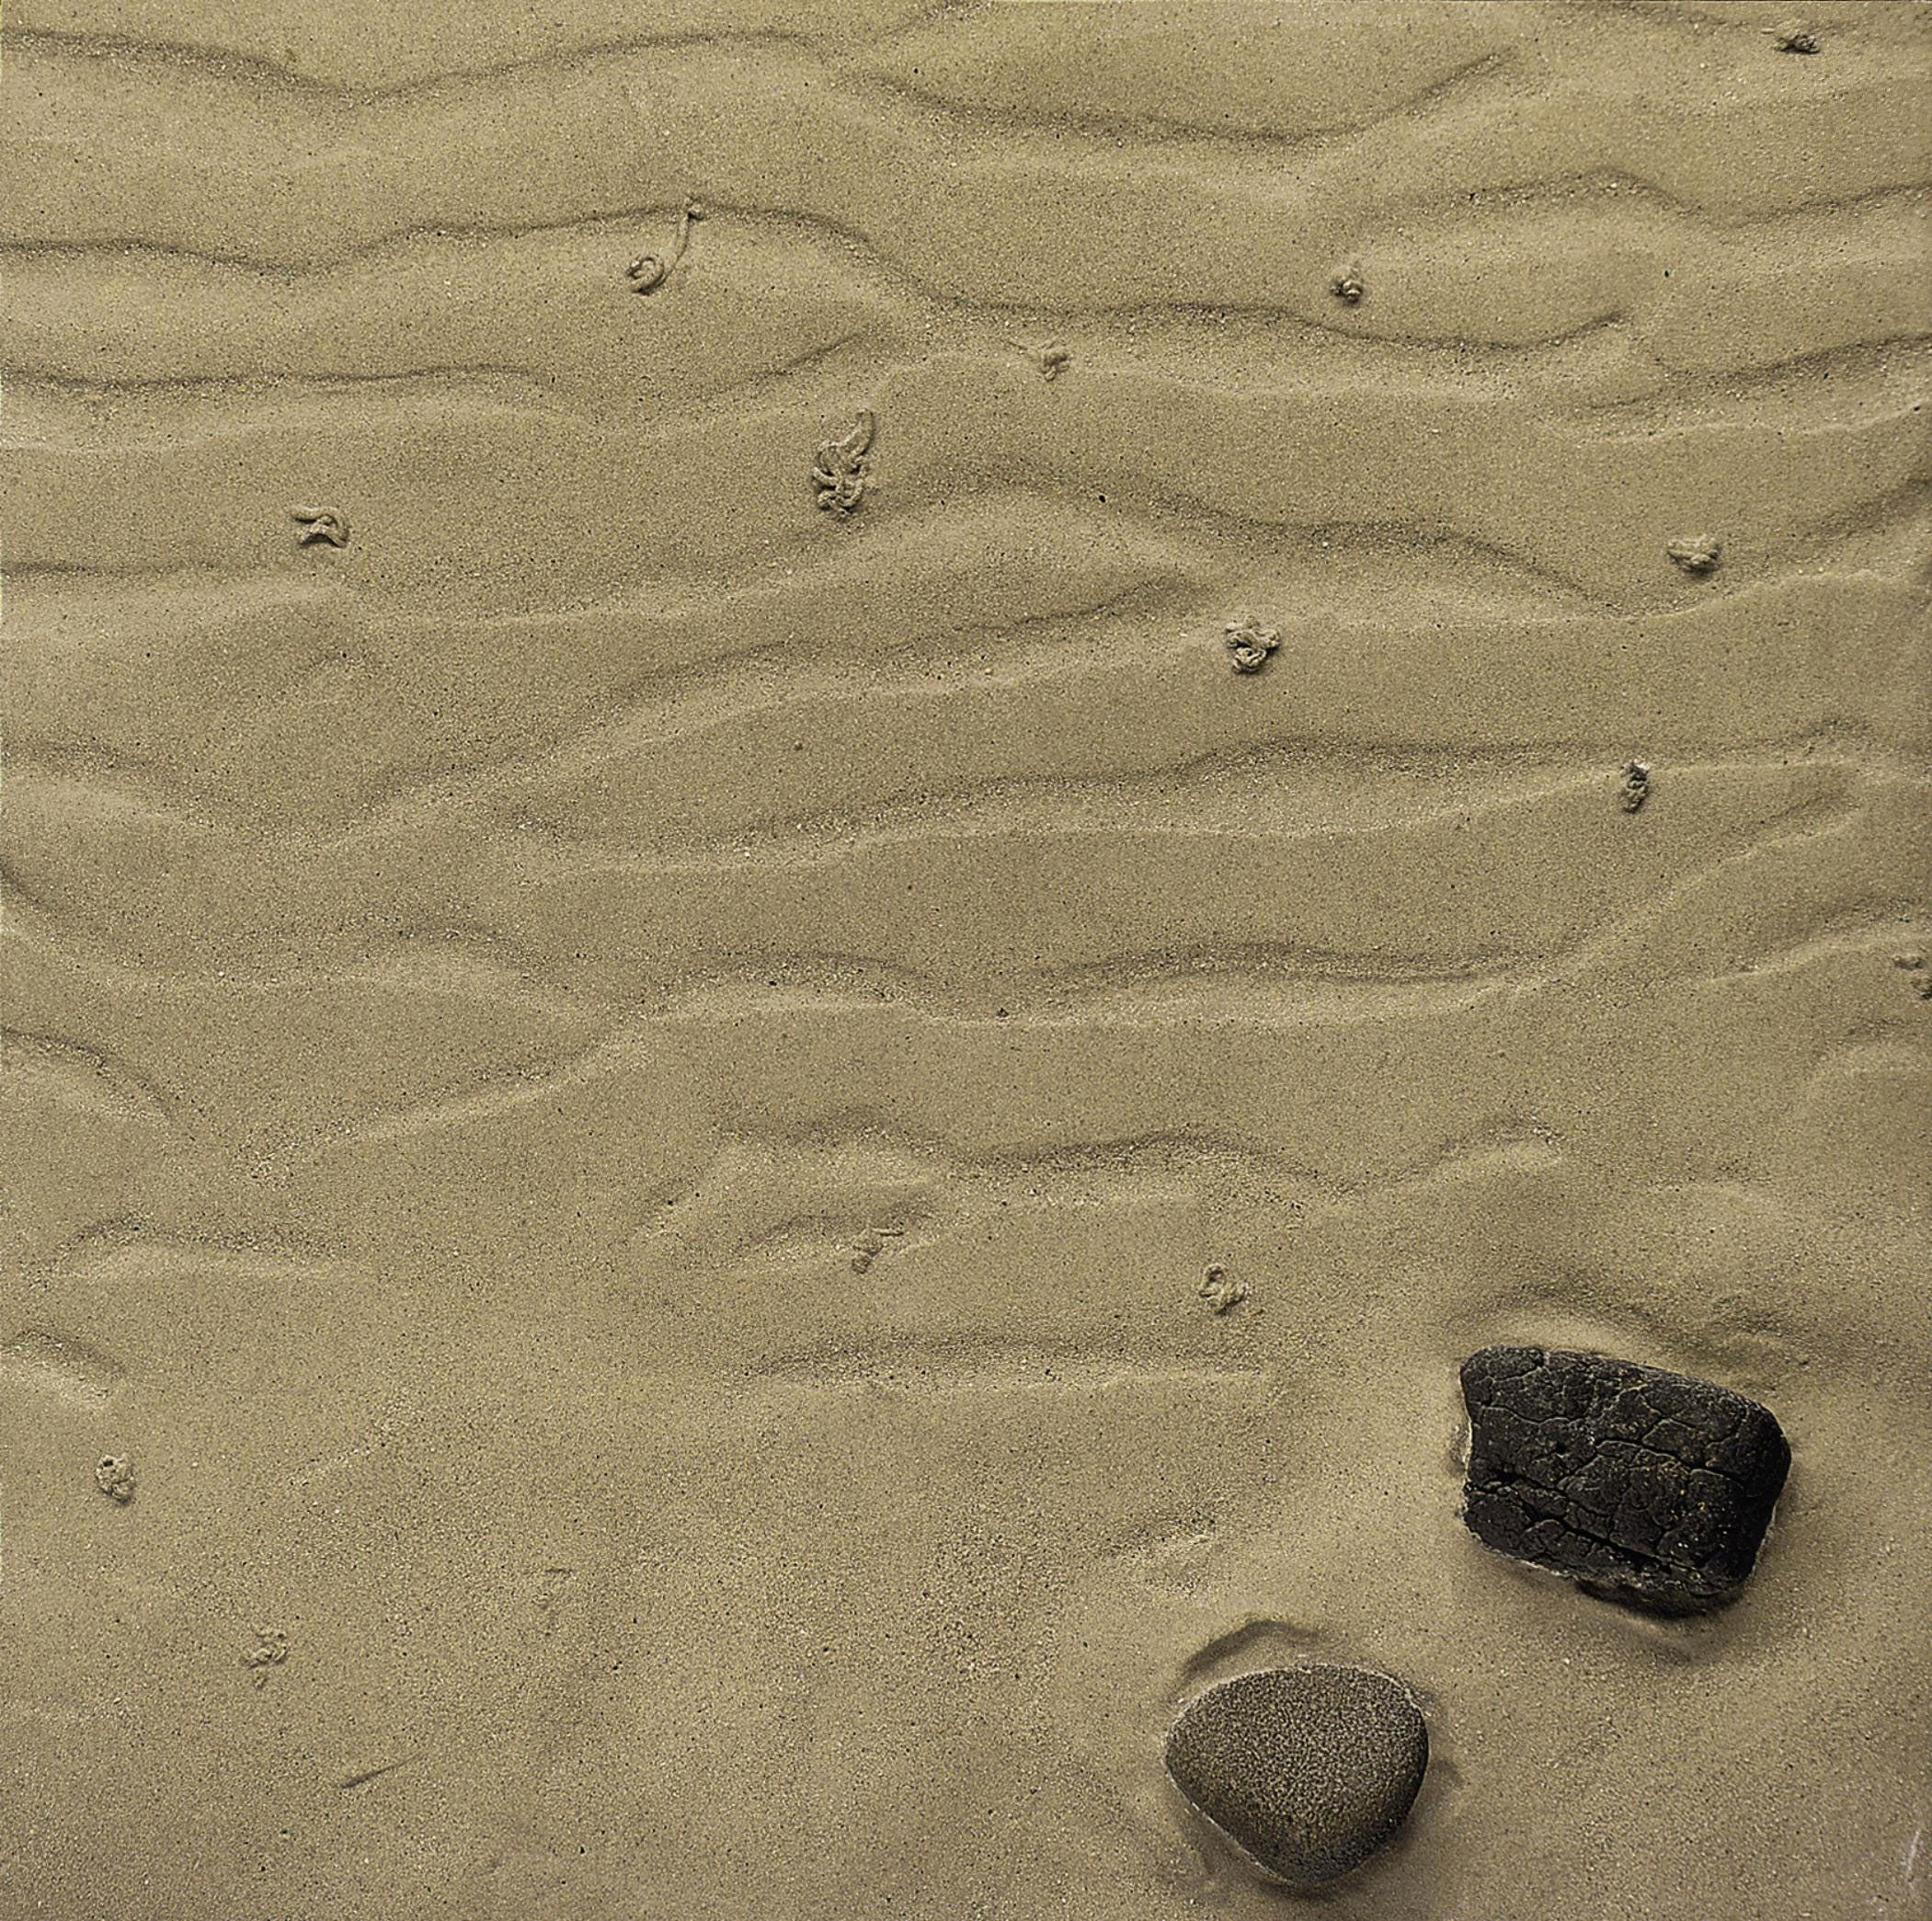 Study of Rippled Sand and Rocks with Worm Casts, Hebrides